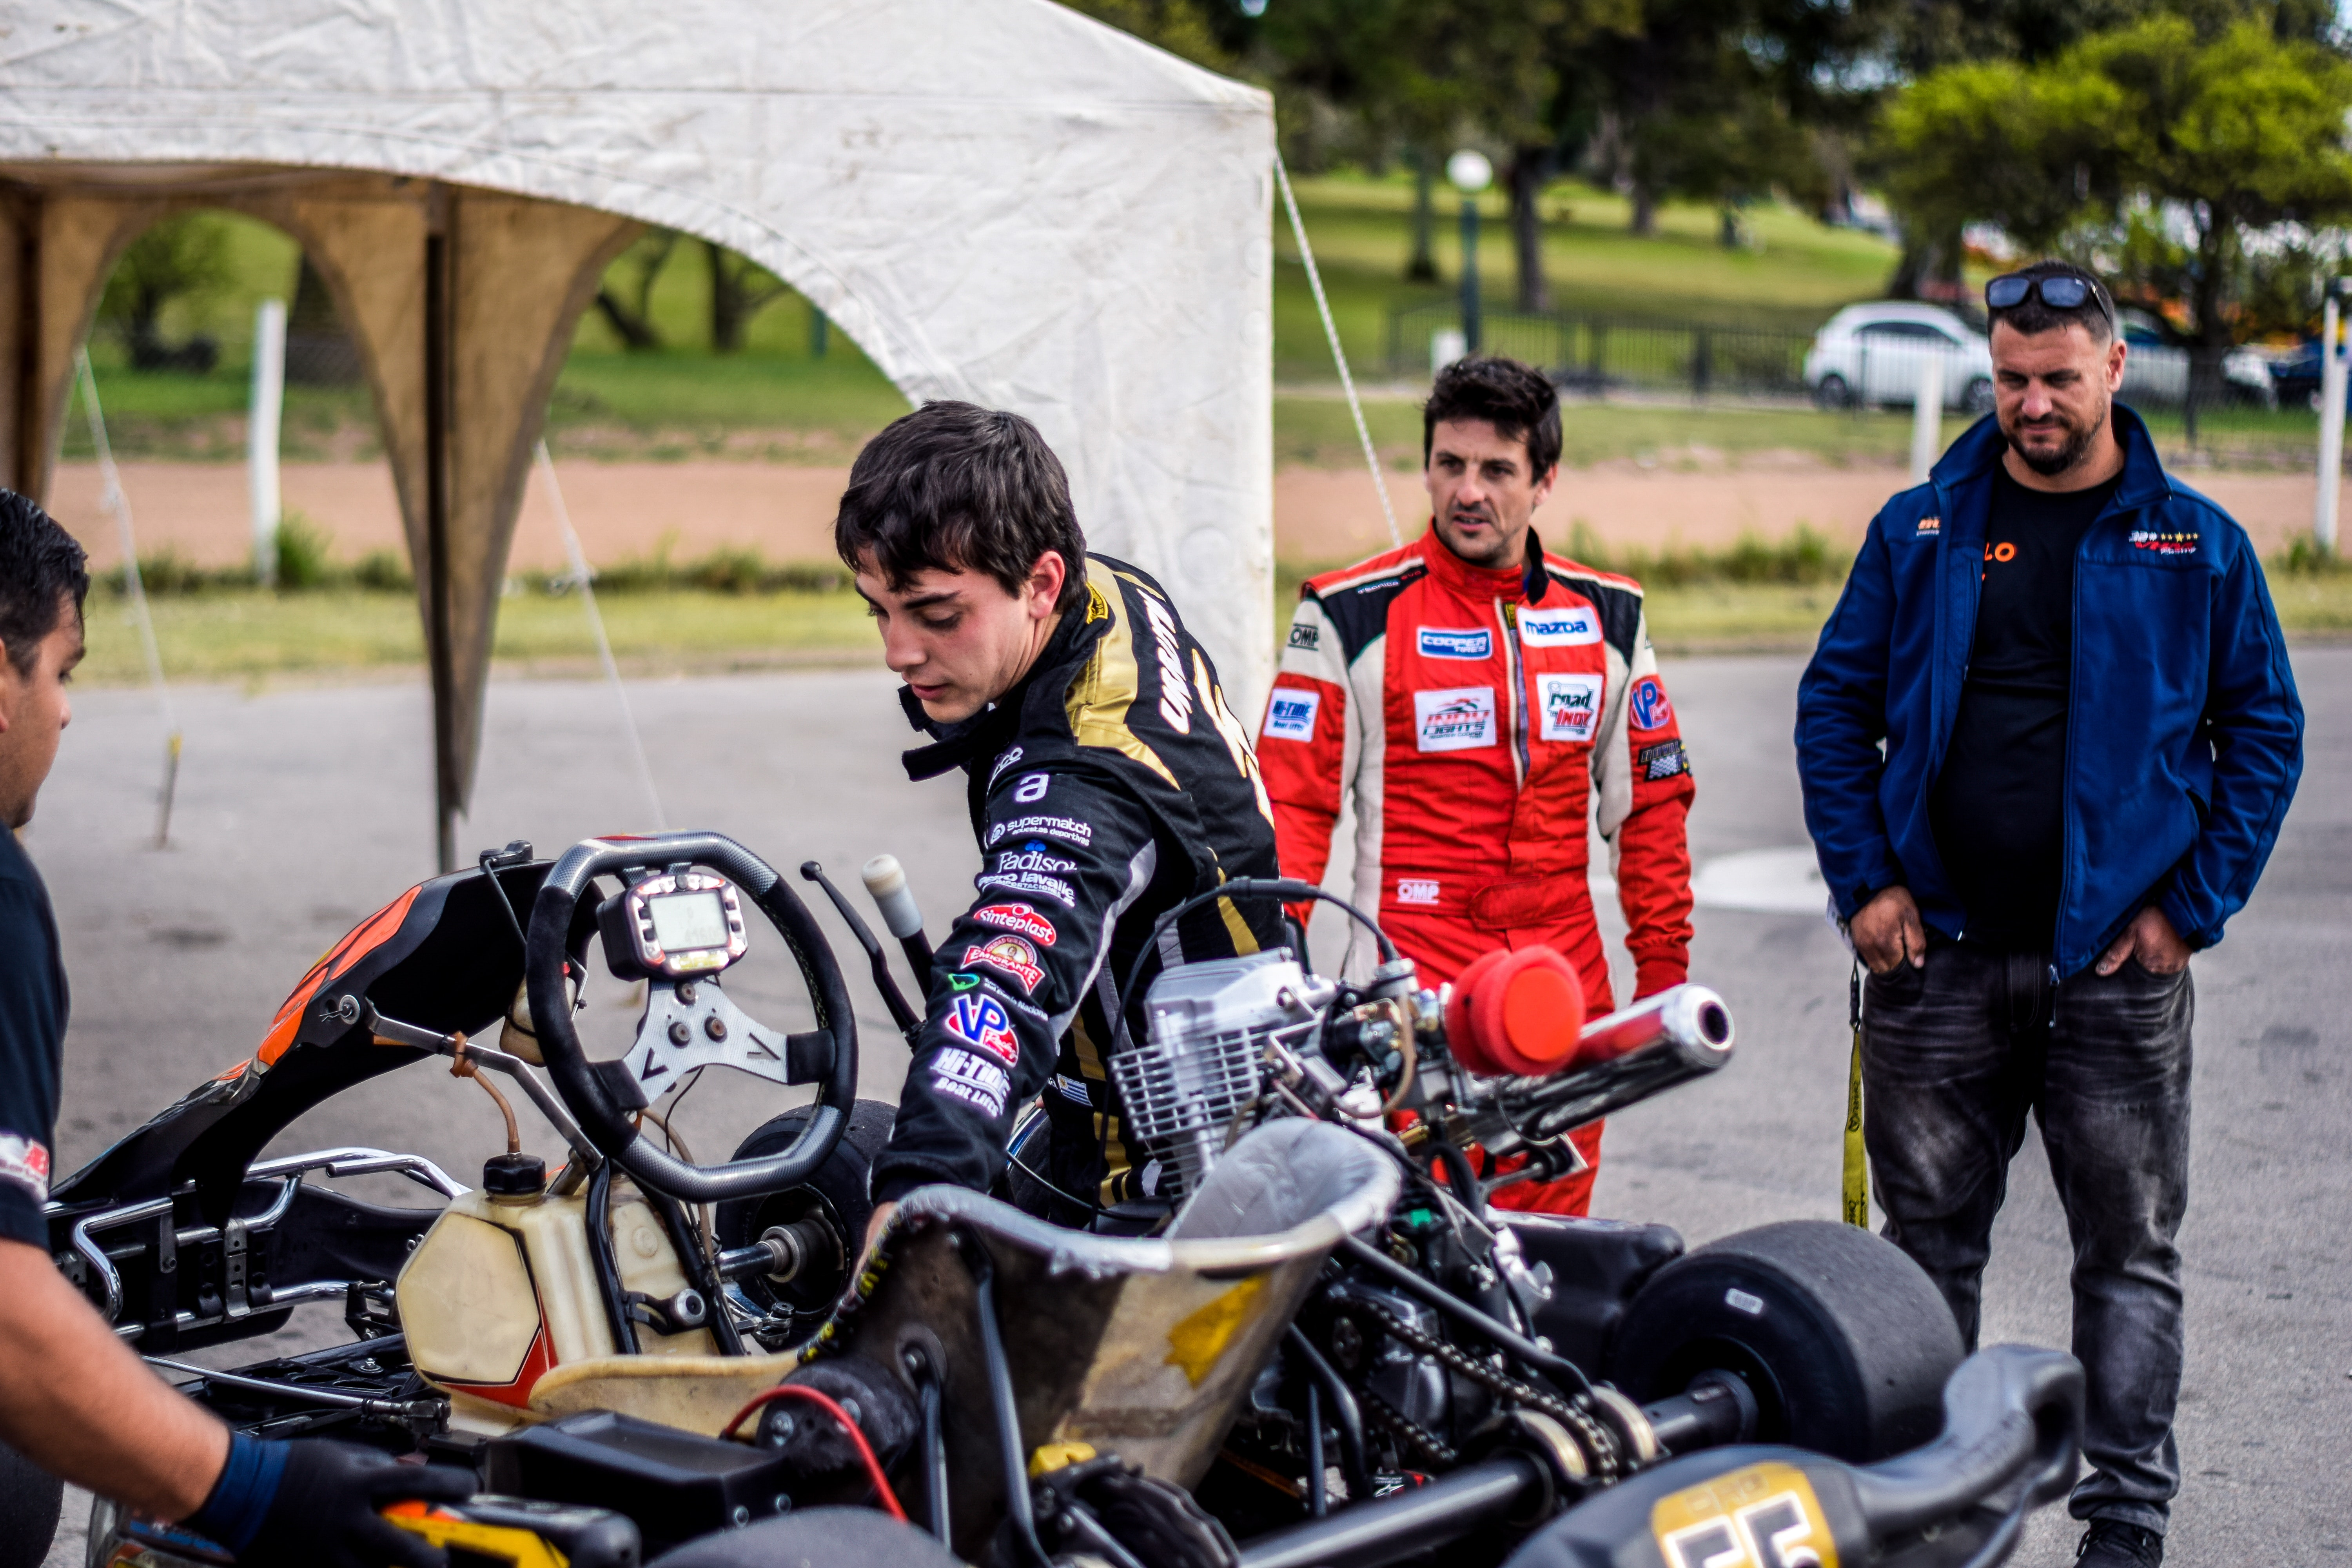 Two motorcycle racers standing in front of motorcycles photo